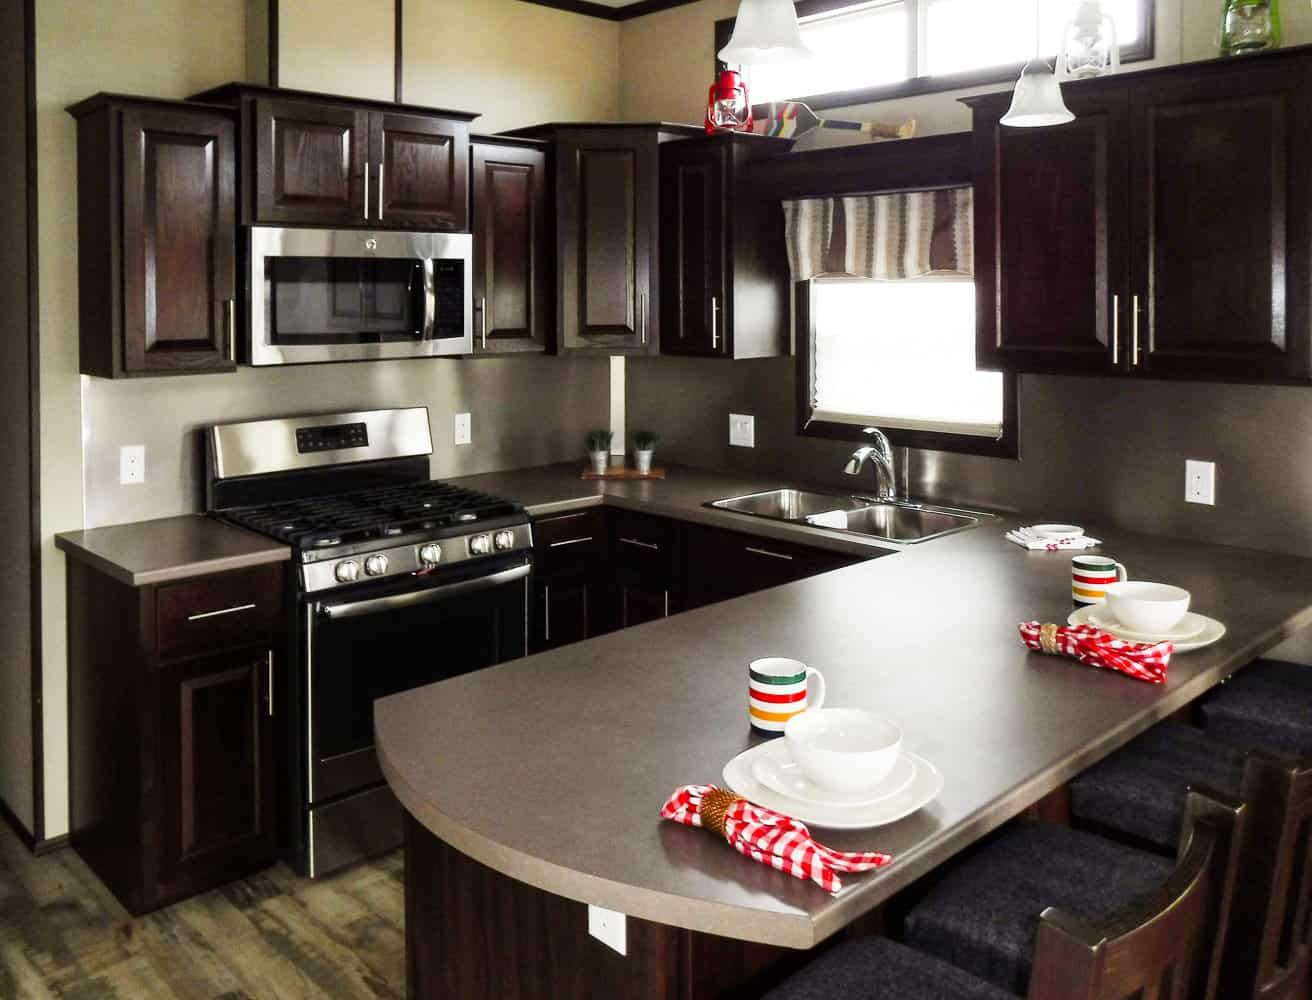 Make Vacay Matter More with Stays at Sherkston Shores! — Luxury Lakefront Rental Cottage Kitchen